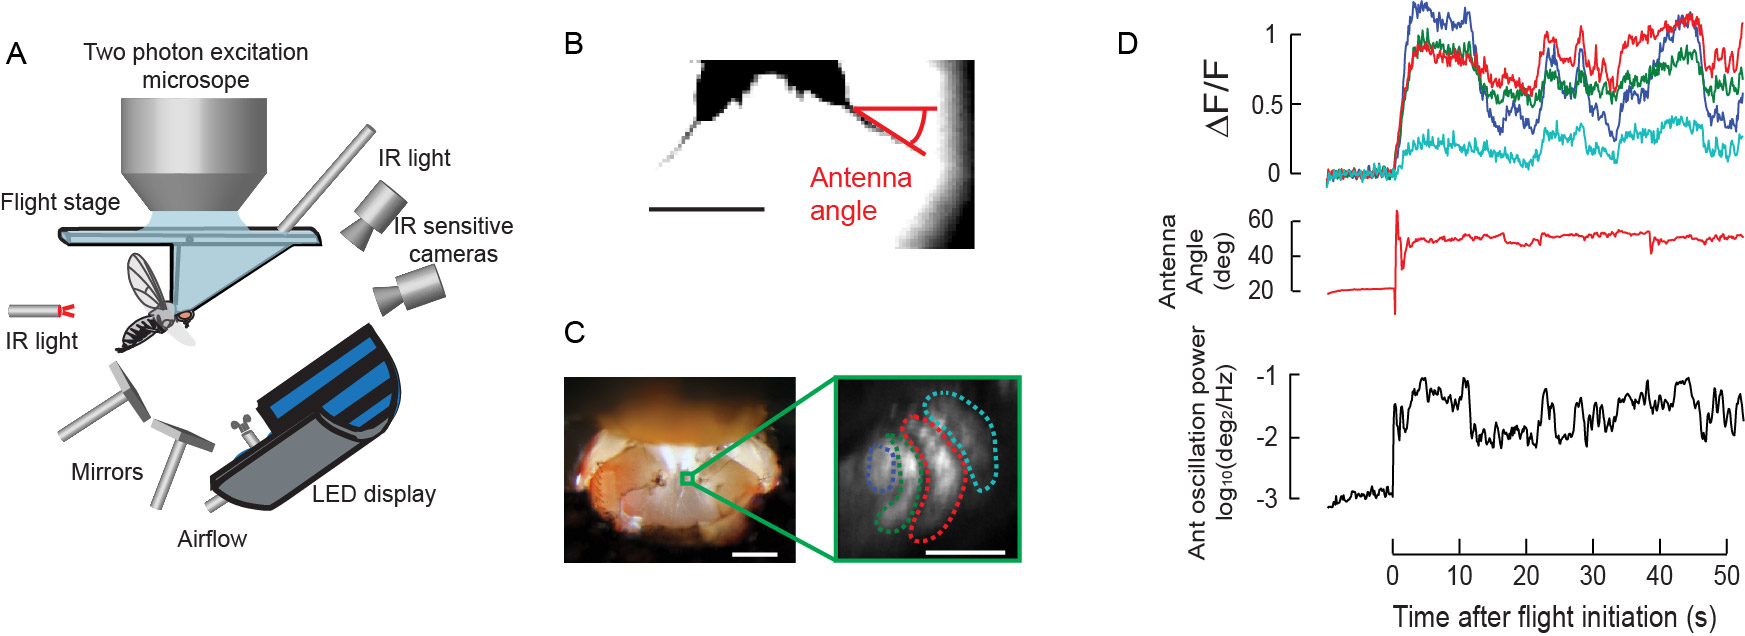 Simultaneous 2-photon calcium imaging and antenna tracking in a flying fruit fly